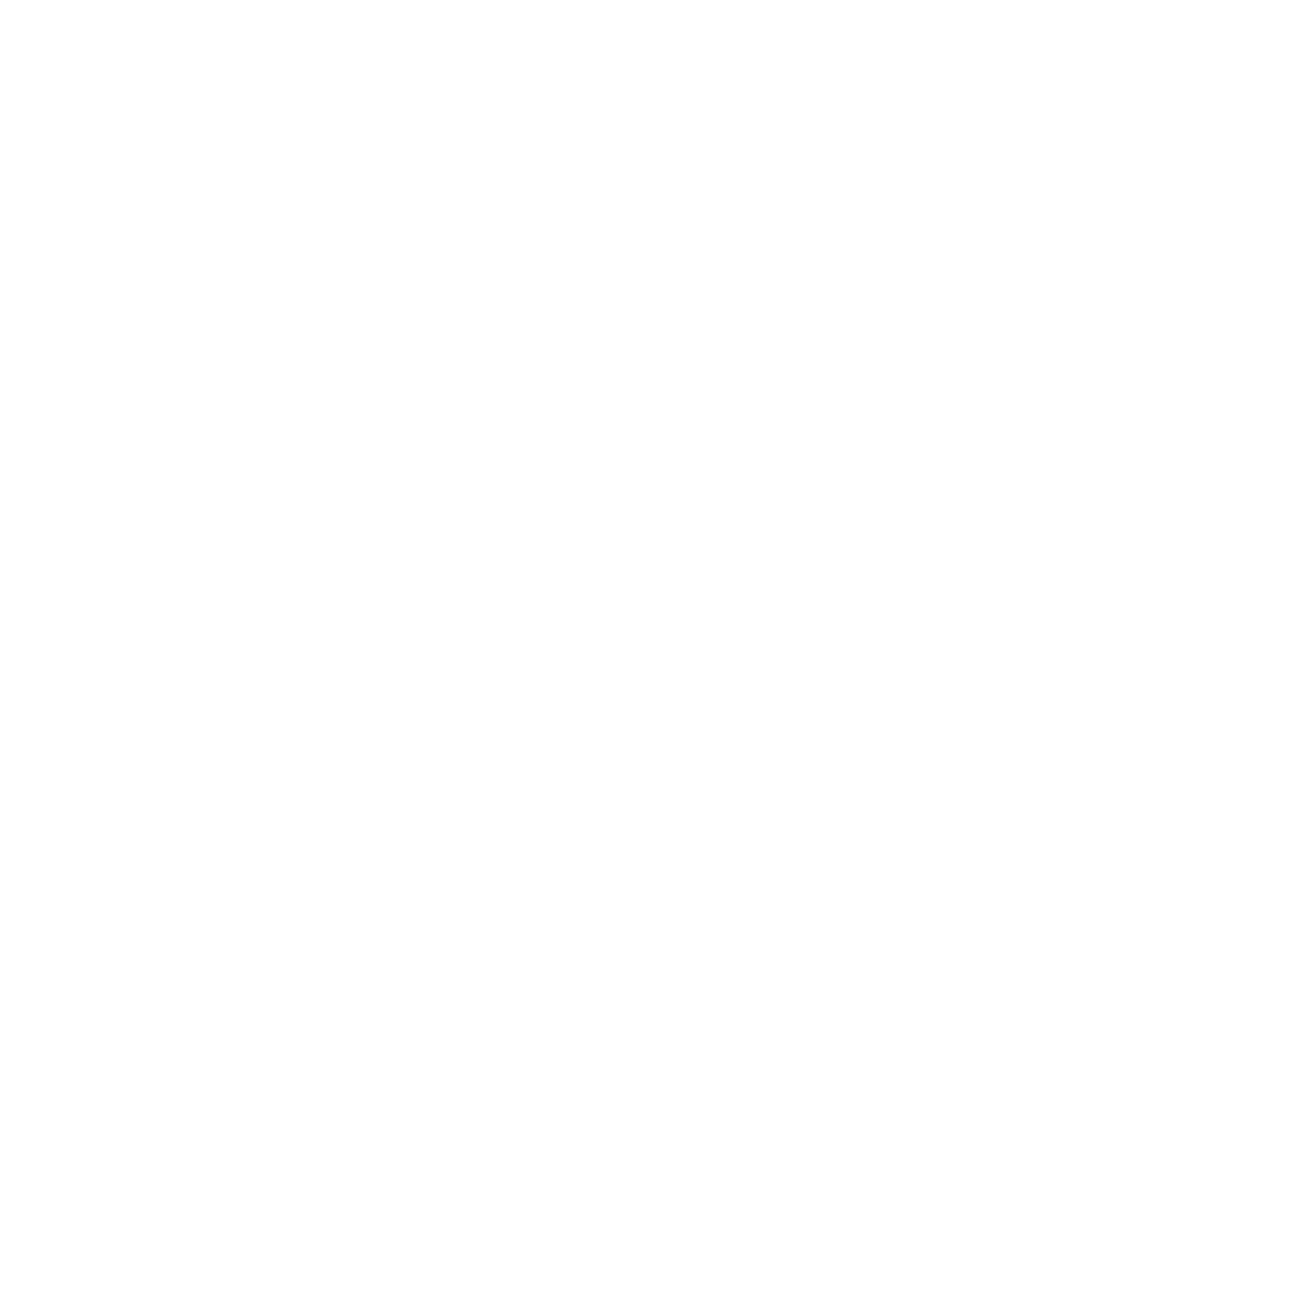 The Digital Banker